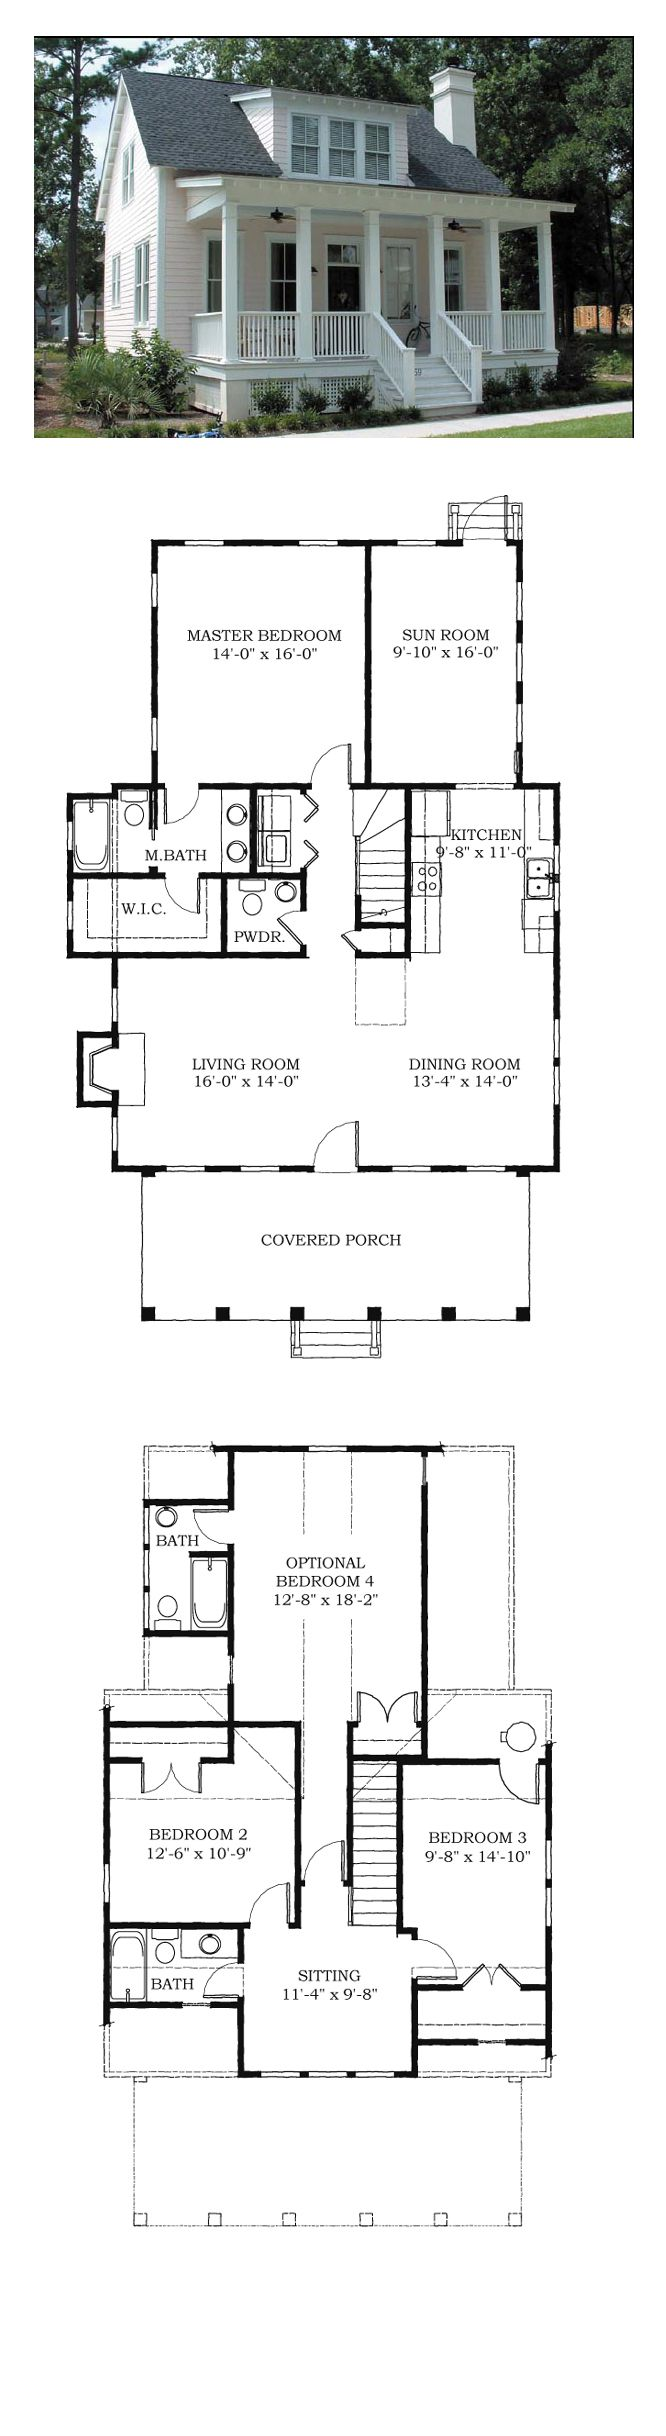 COOL House Plan ID Chp 38703